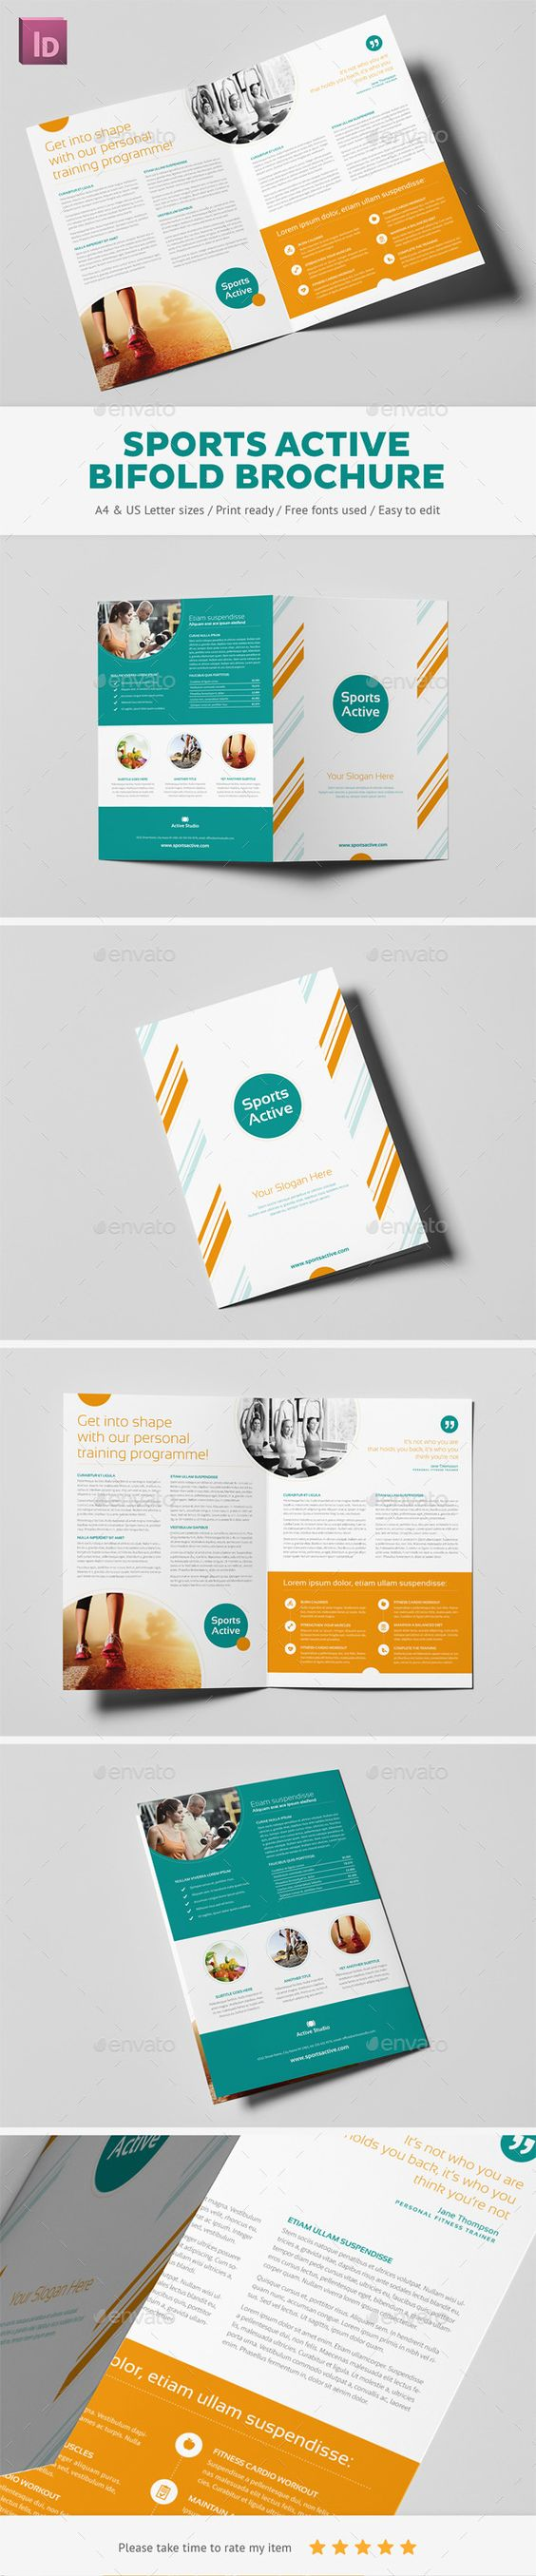 Sports Active Bifold Brochure Sports Brochures And Design - Fun brochure templates